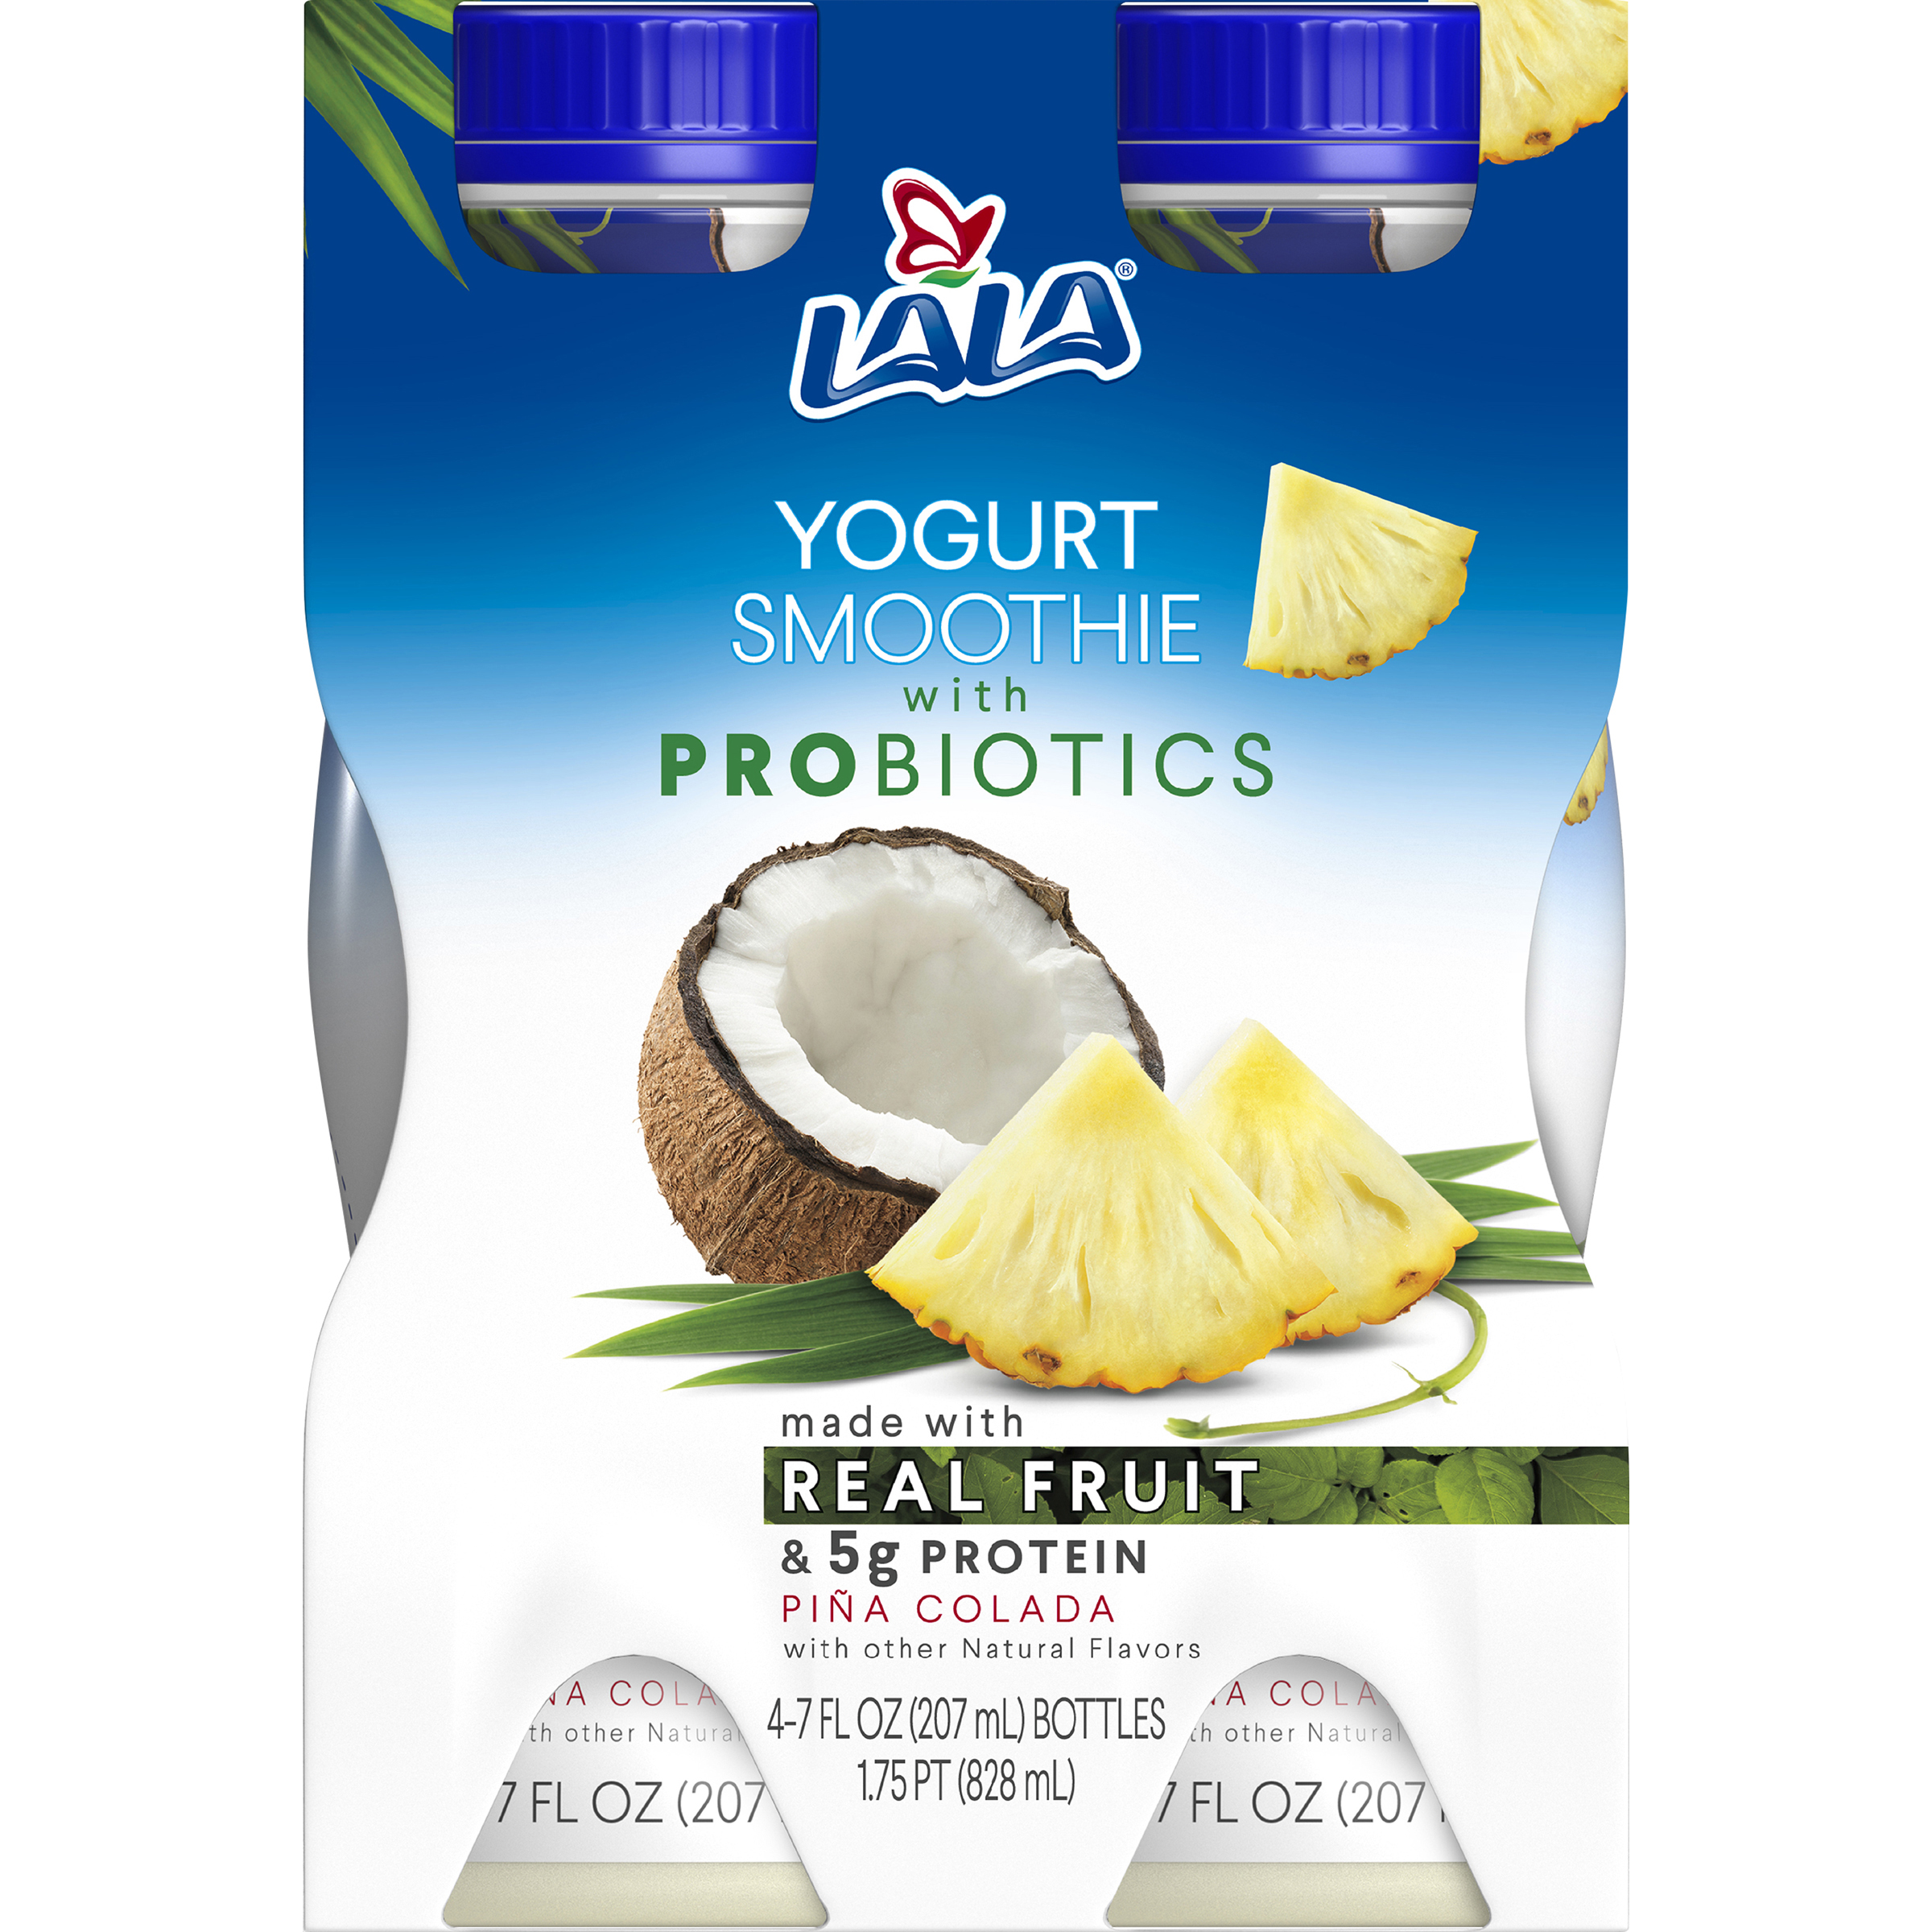 LALA Drinkable Yogurt Smoothie with Probiotics, 5g of Protein, Pina Colada, 7-Ounce Bottles (Pack of 4)